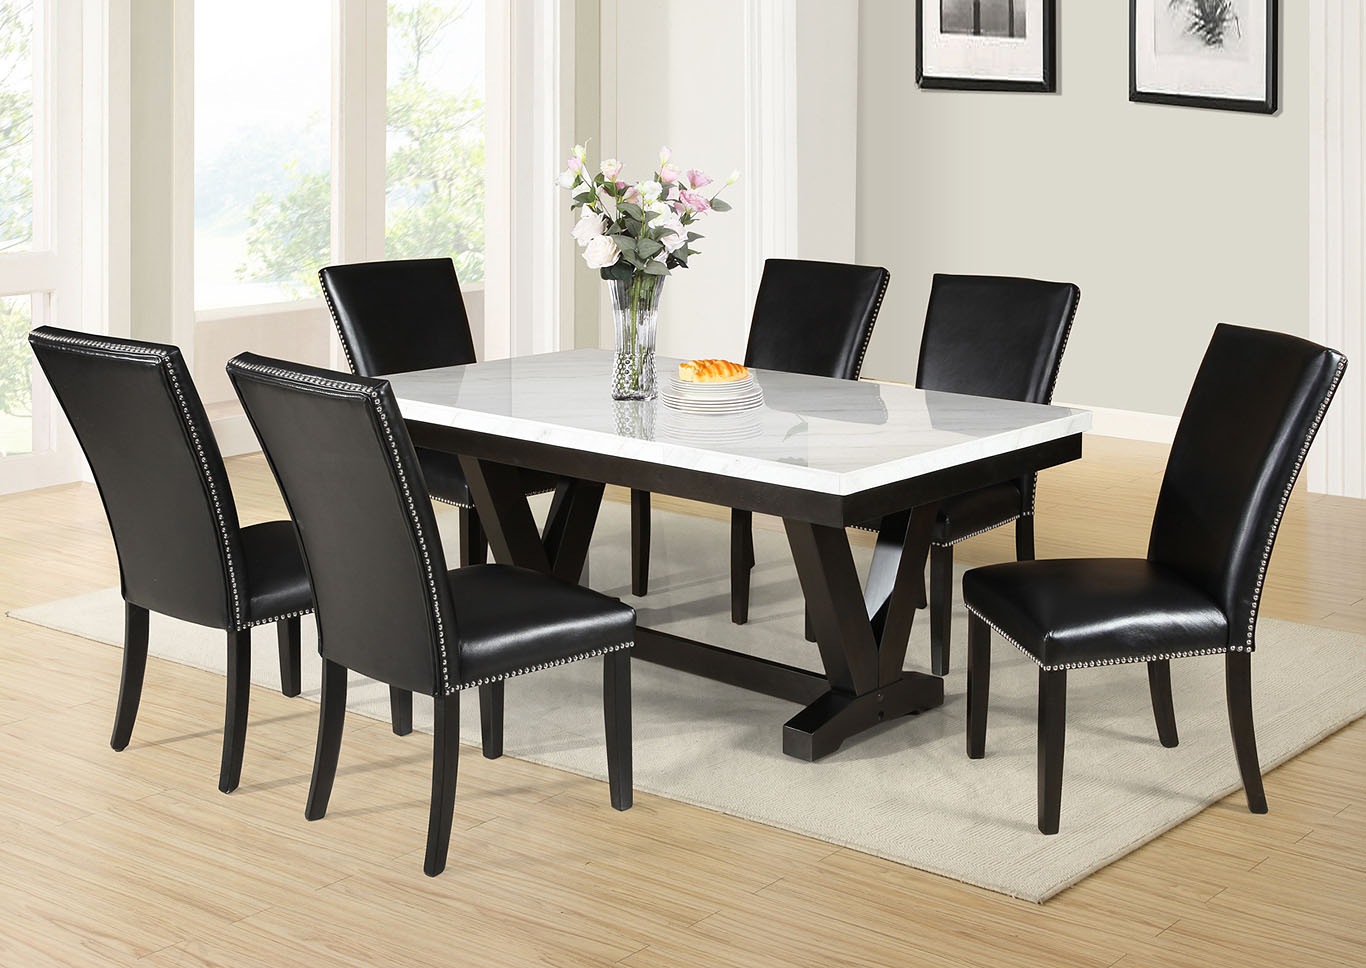 Finley Black Rectangular Dining Set W 6 Chairs Maverick Wholesale Furniture